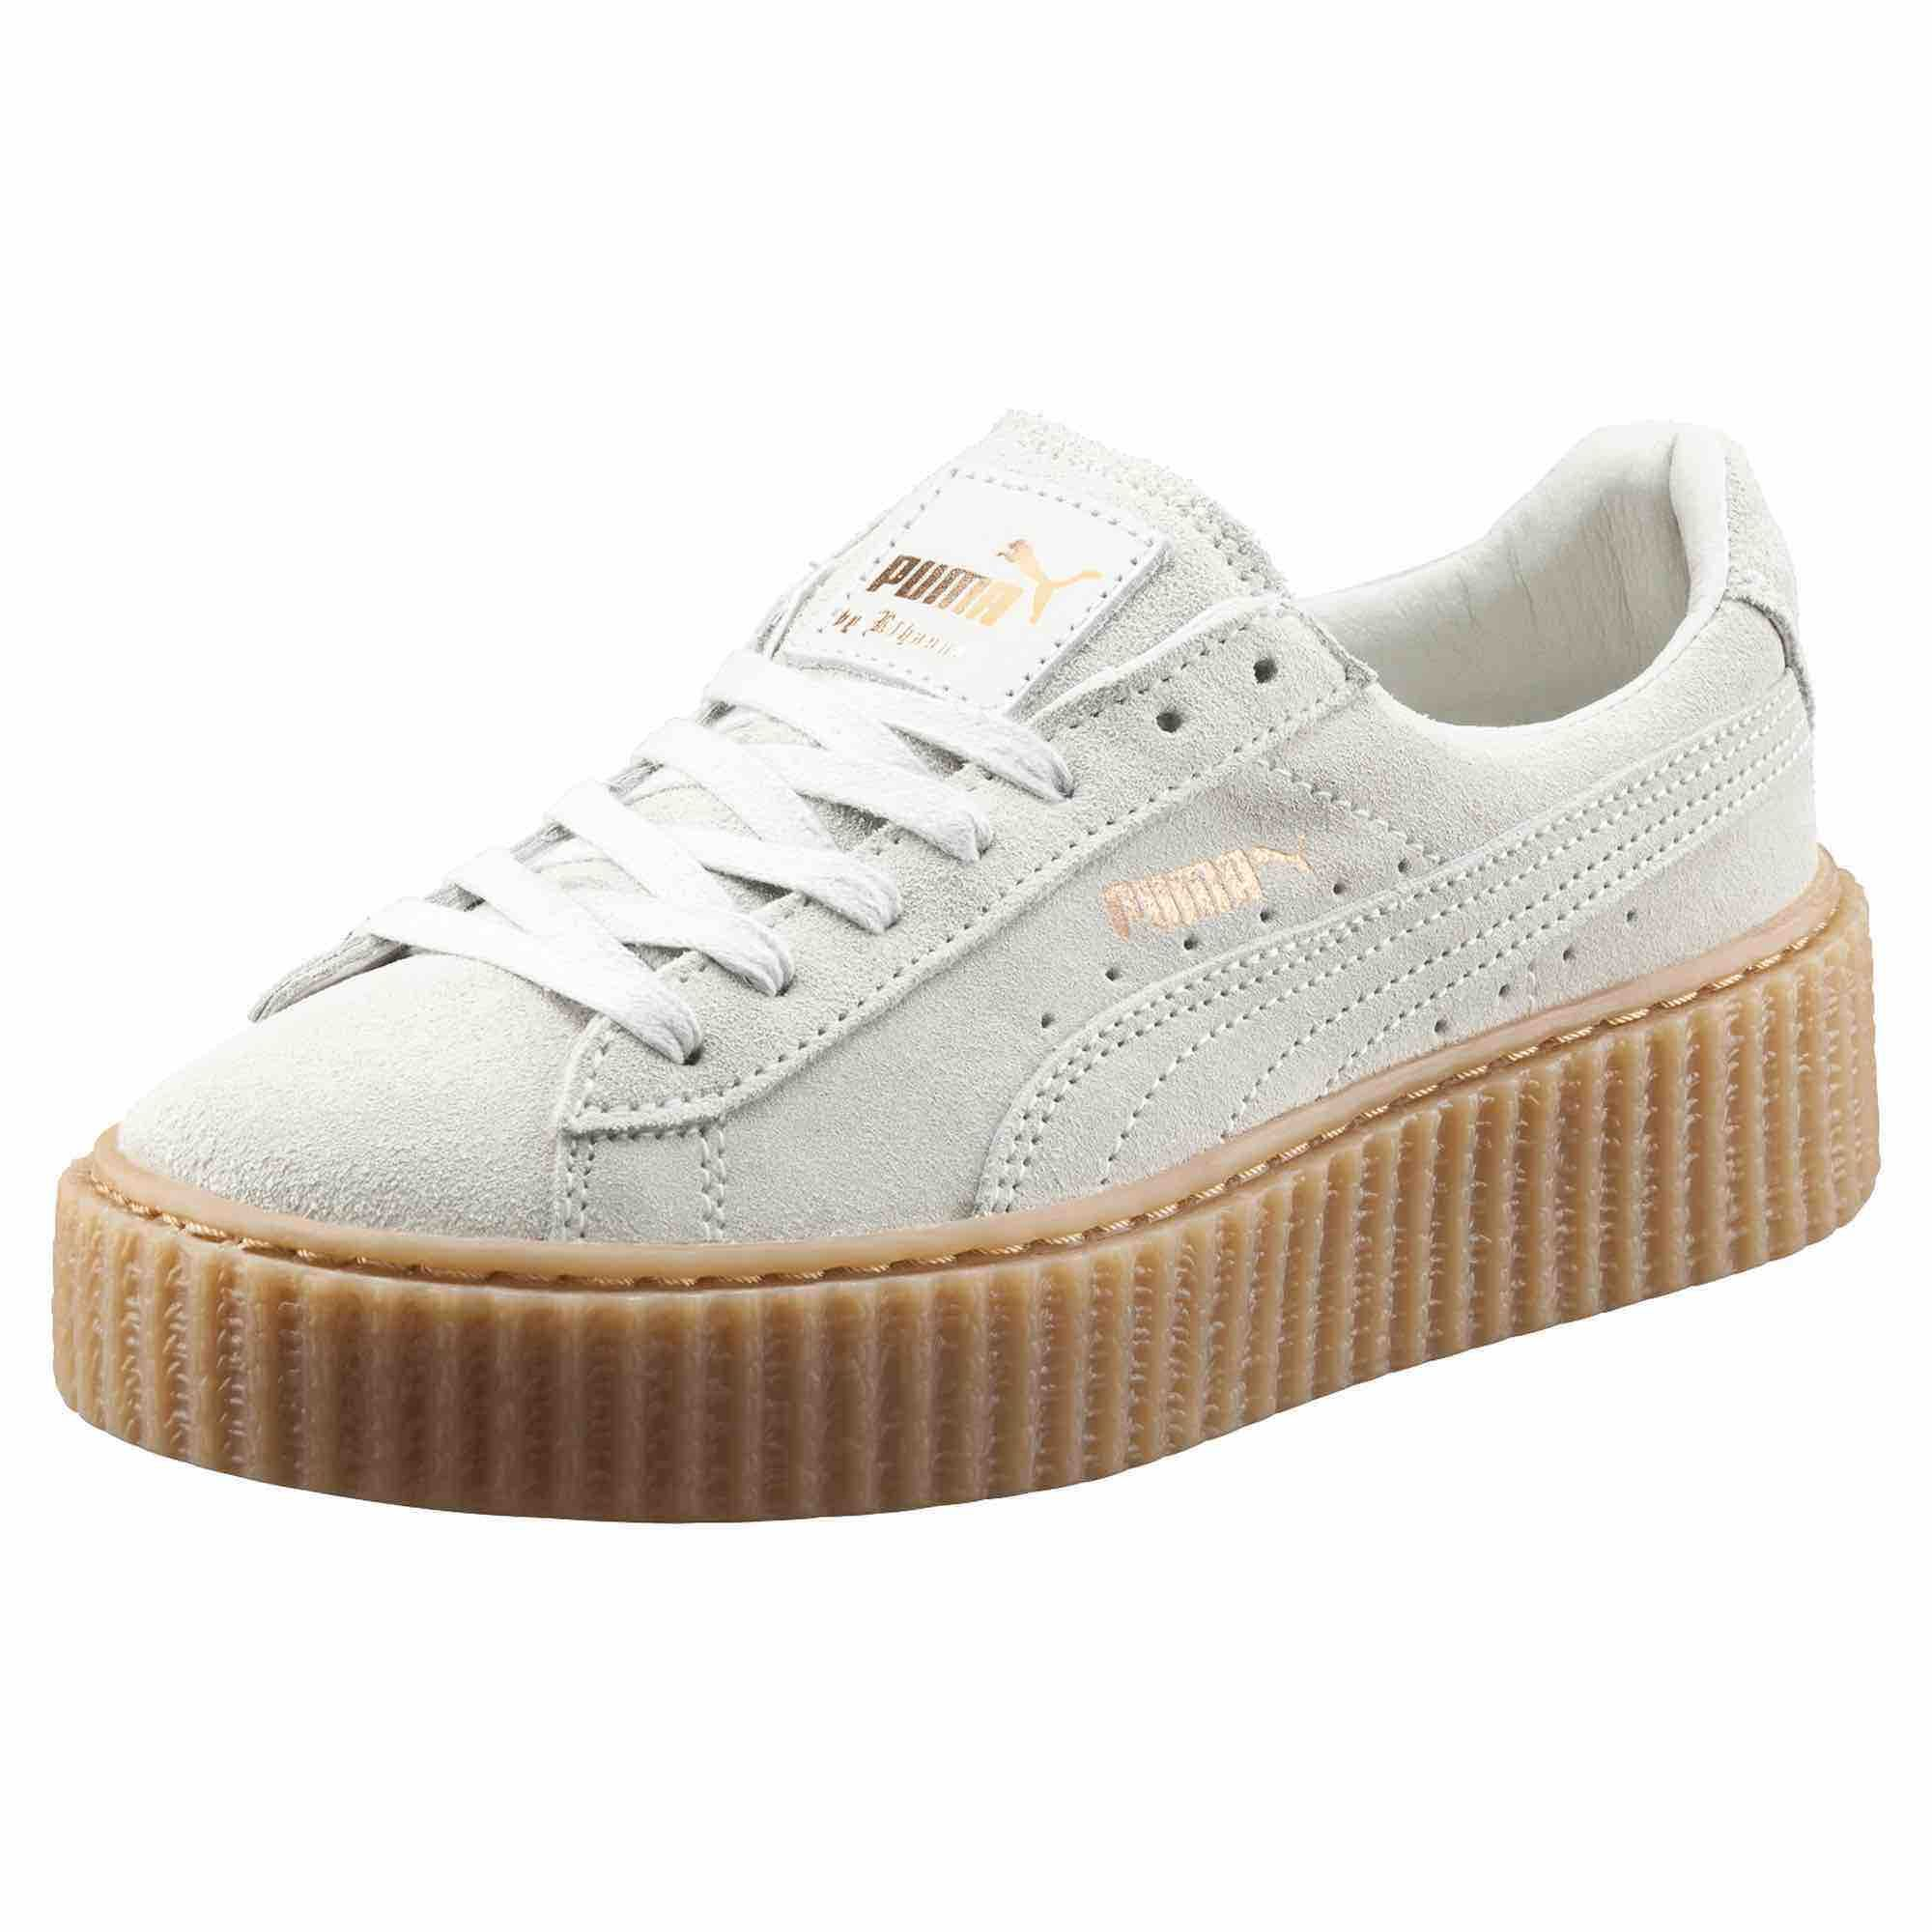 DROP RIHANNA chaussures 2Tendance 2017 PUMA CREEPER – BY 5jq43ARL